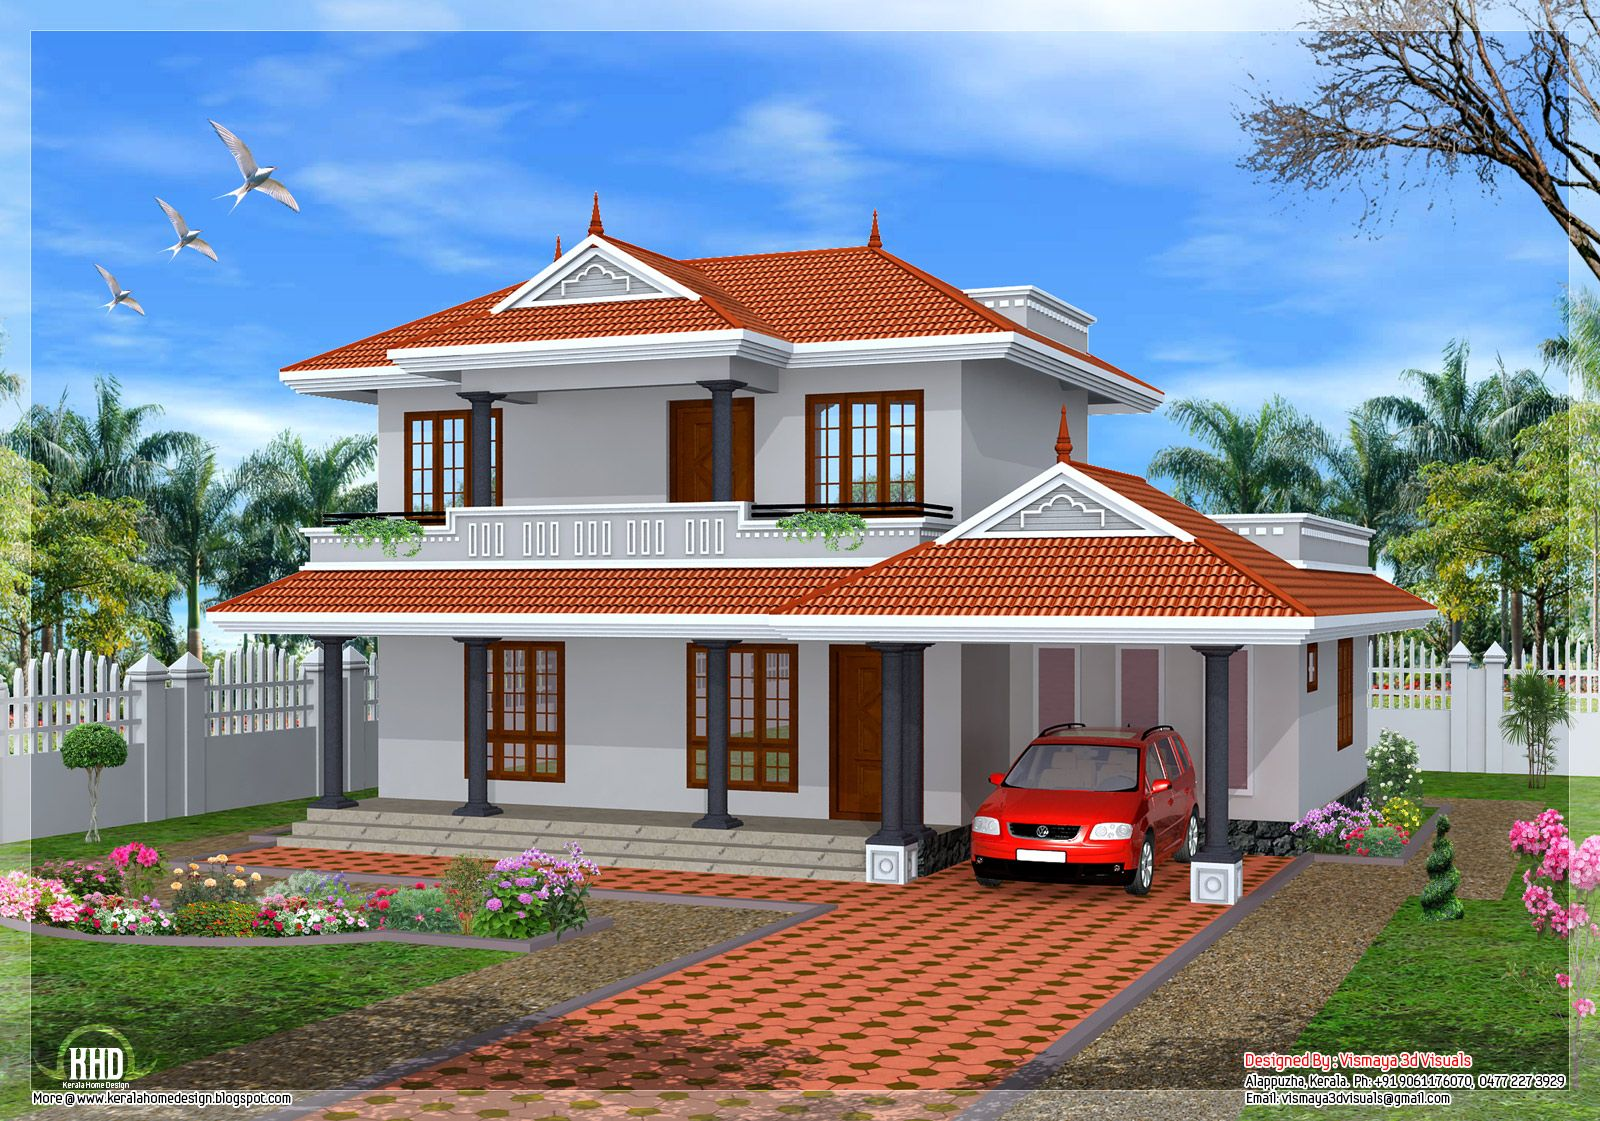 kerala home design and floor plans kerala home design nice homes pinterest kerala home design and floor plans